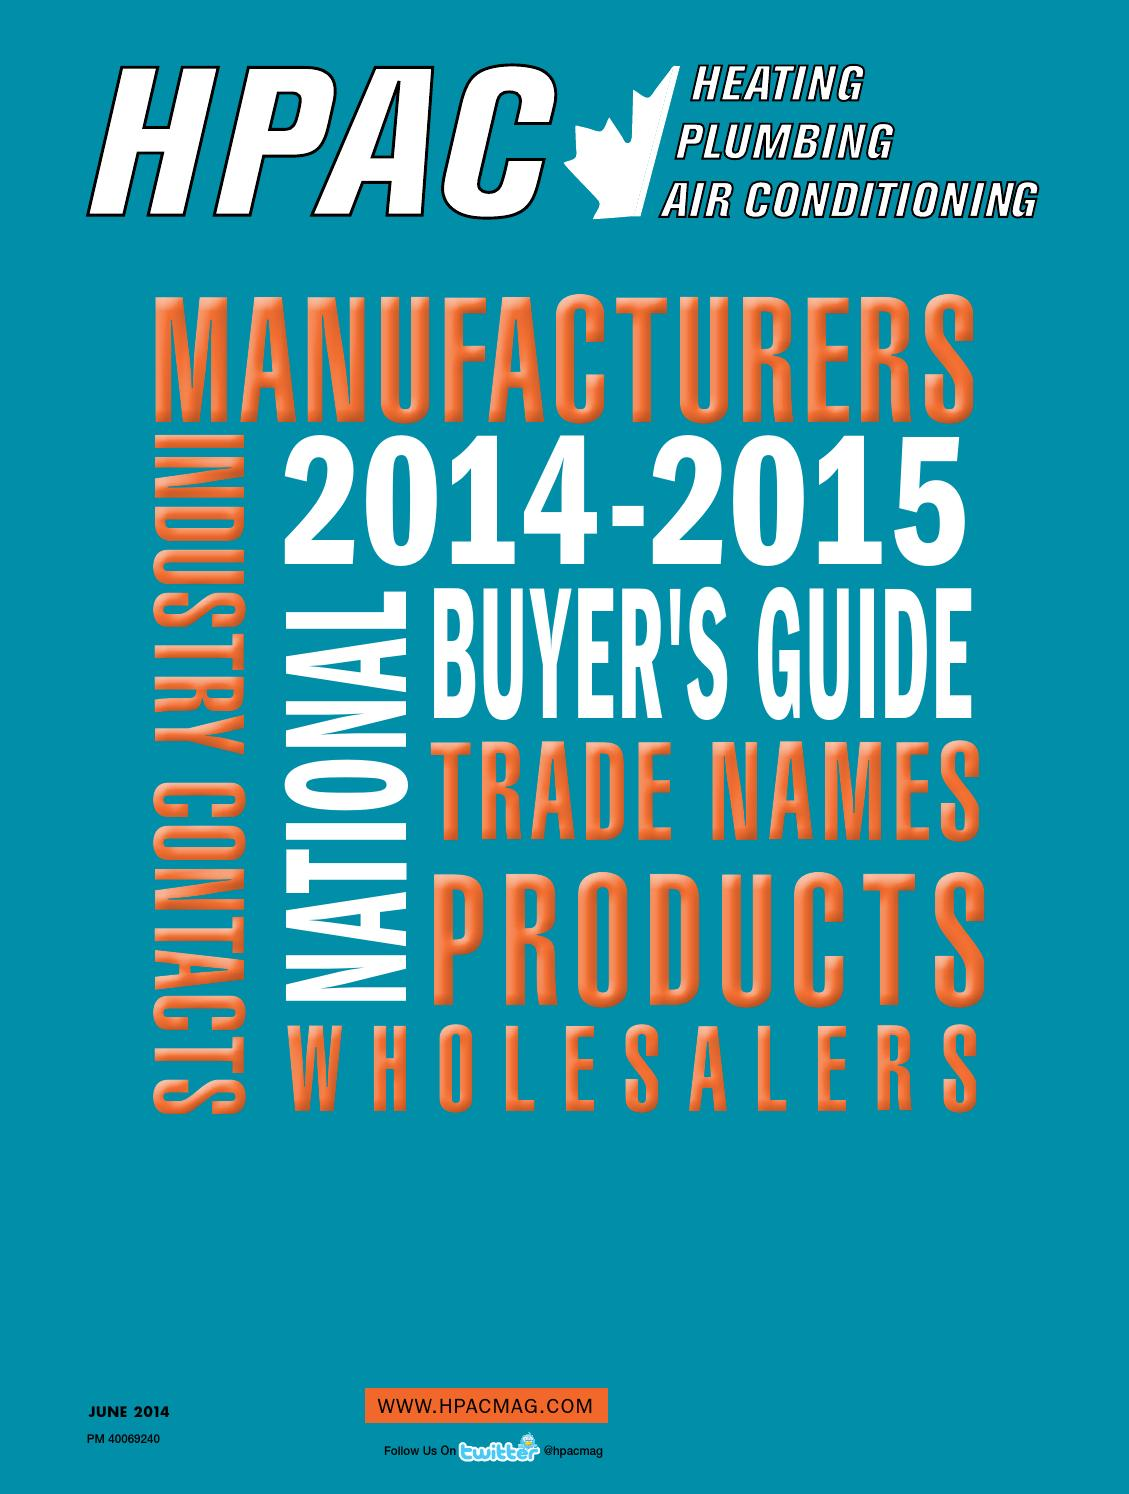 HPAC June 2014 Buyers Guide by Annex-Newcom LP - issuu